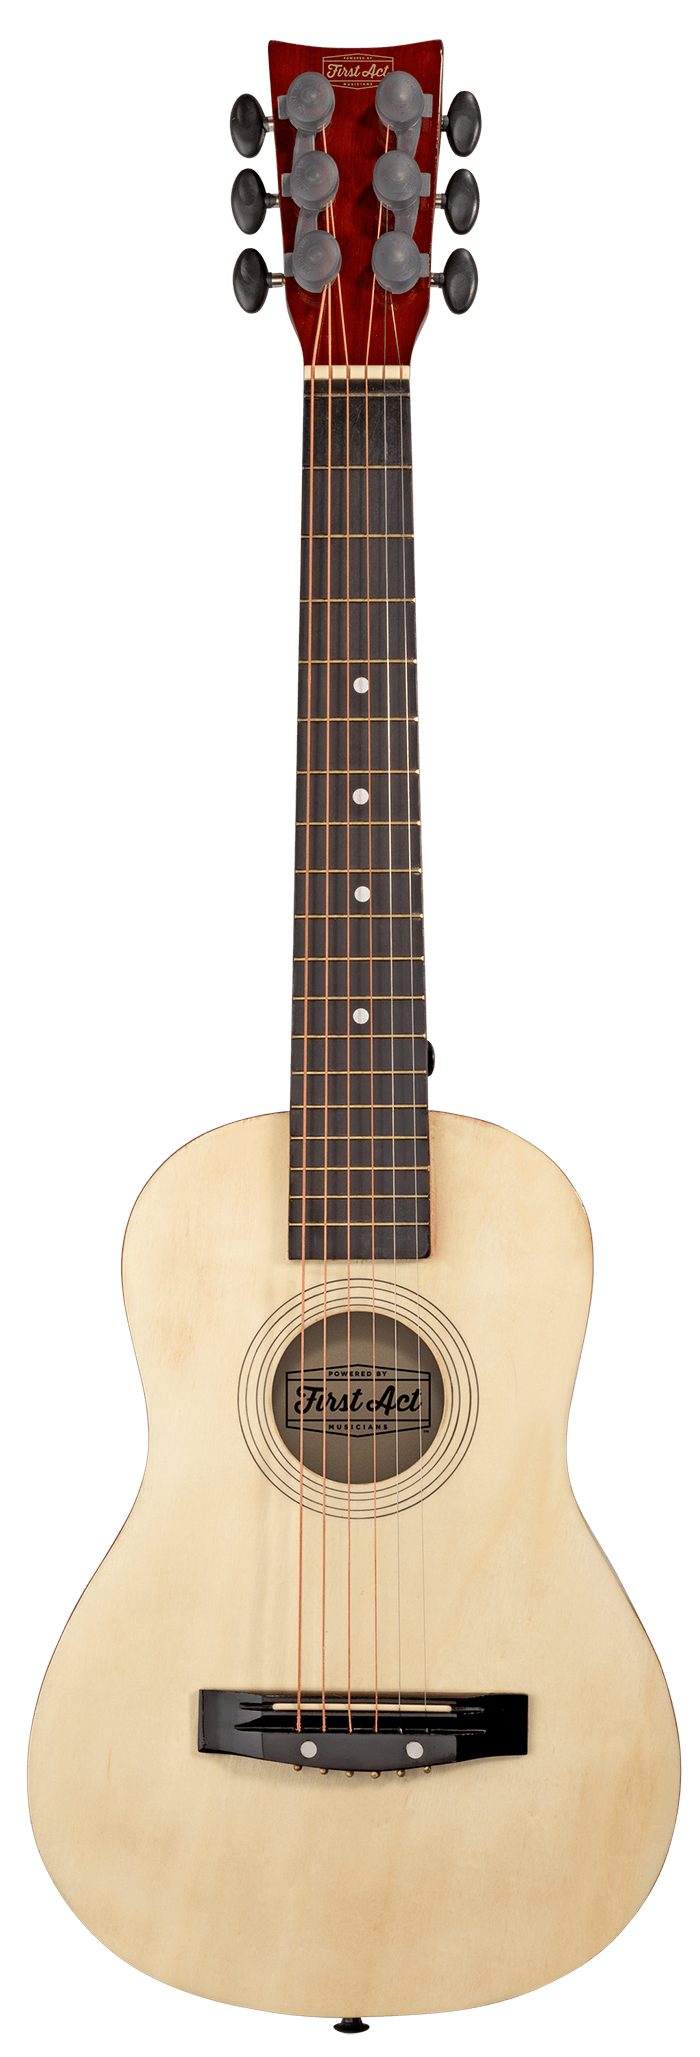 """30"""" Acoustic Guitar - Natural 